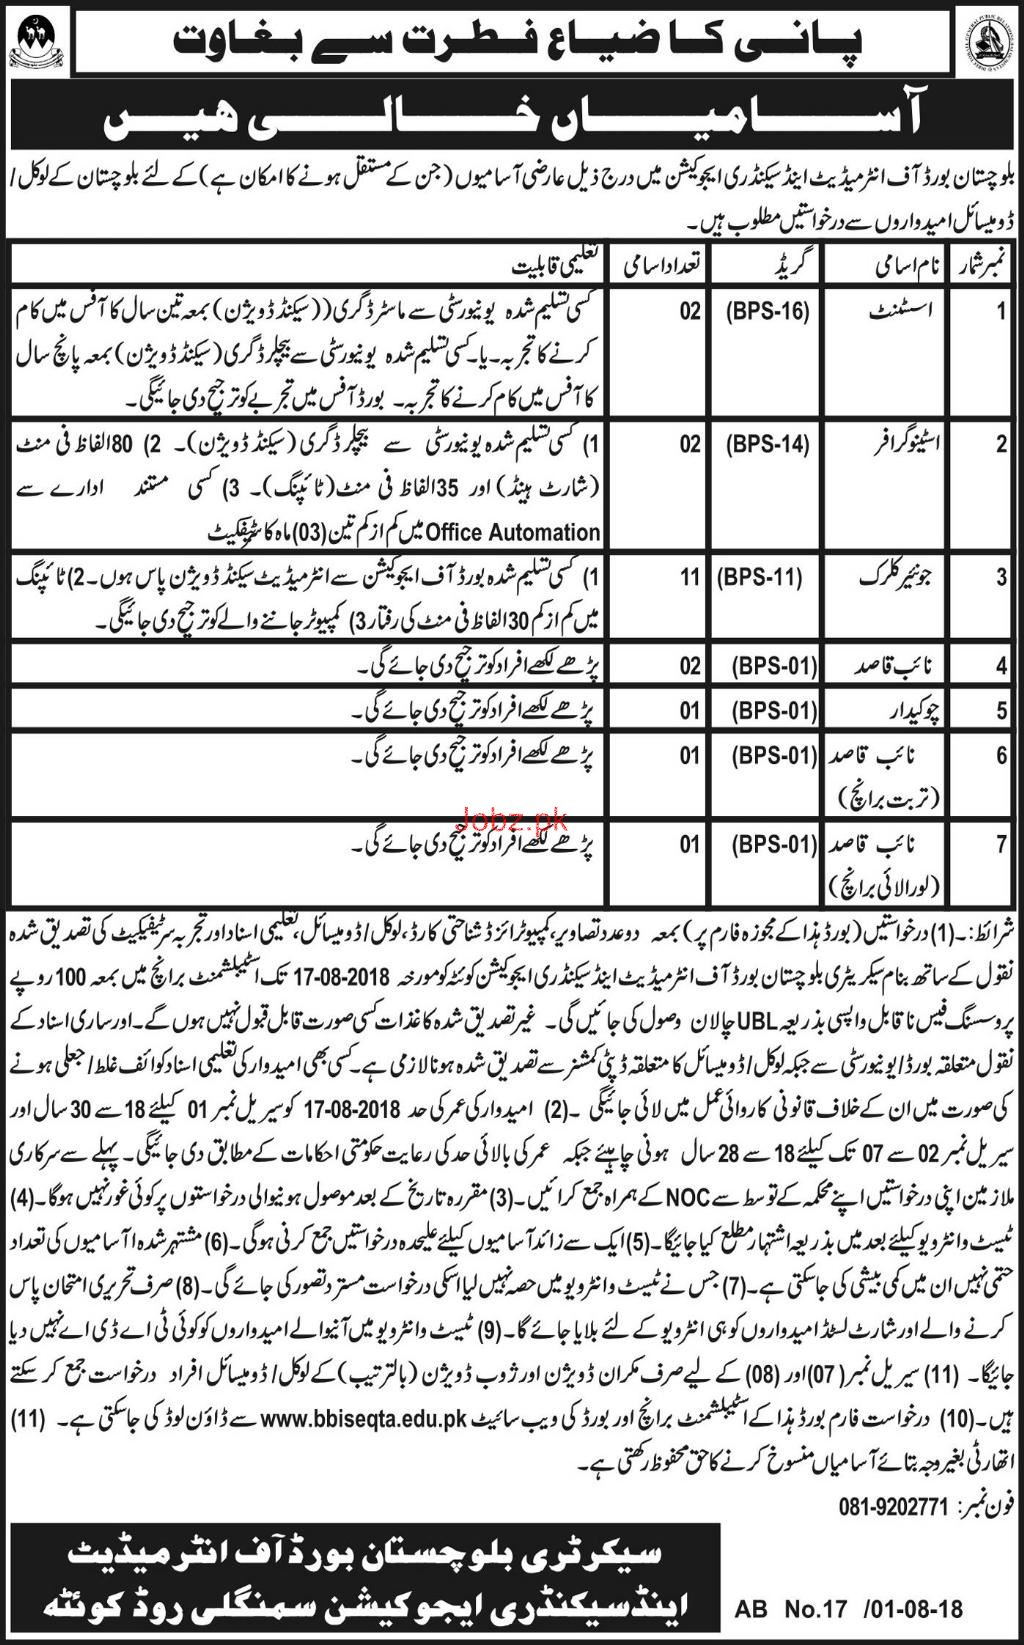 Balochistan Board of Intermediate & Secondary Education Job